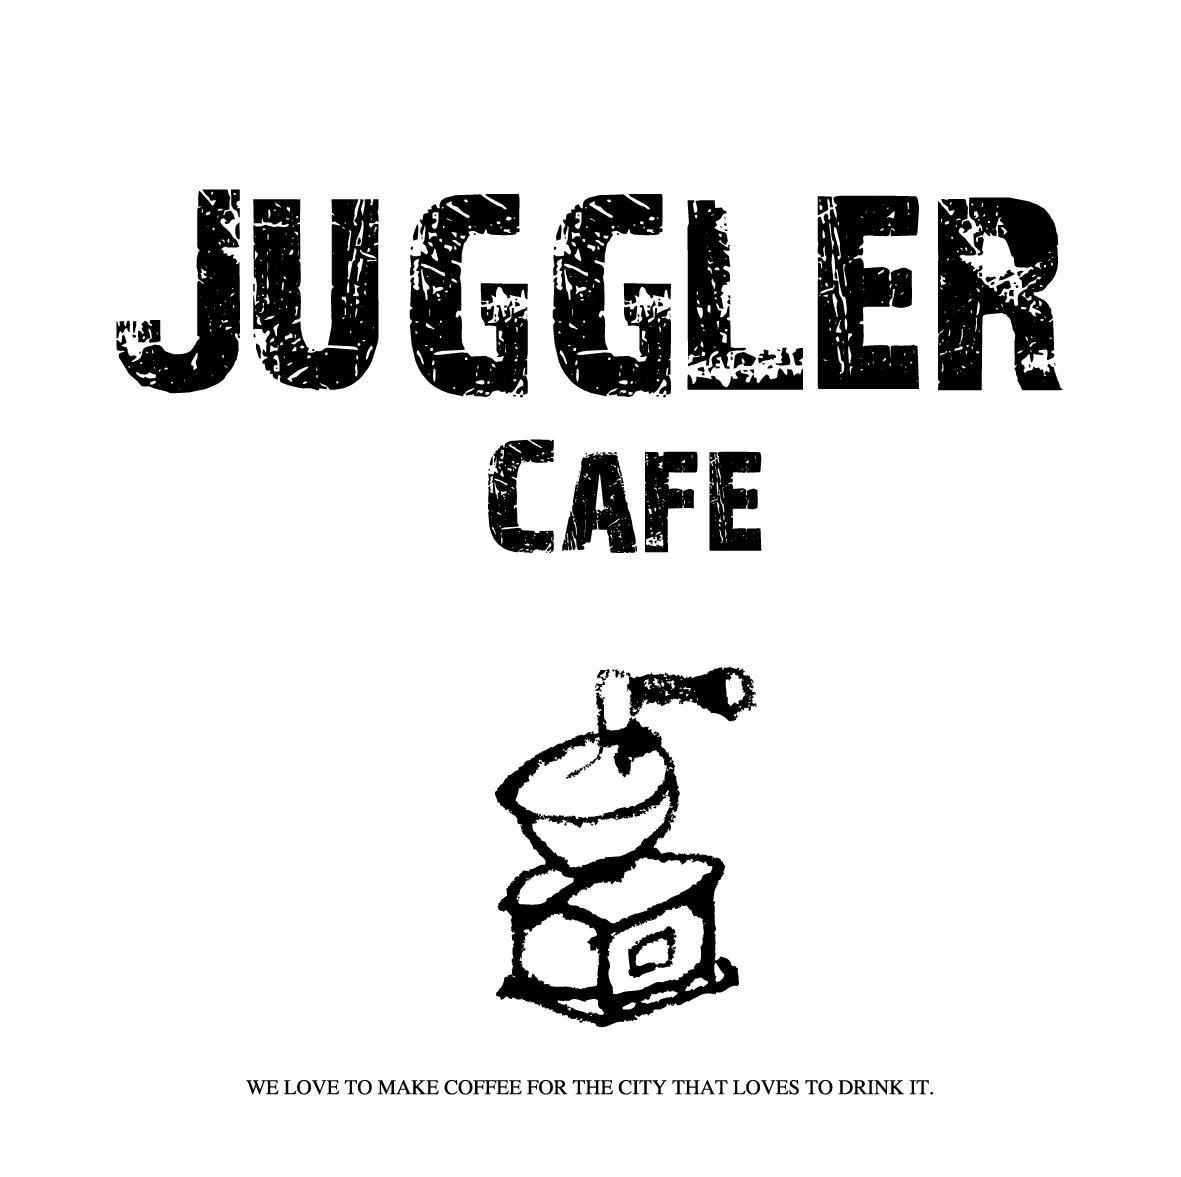 Juggler cafe